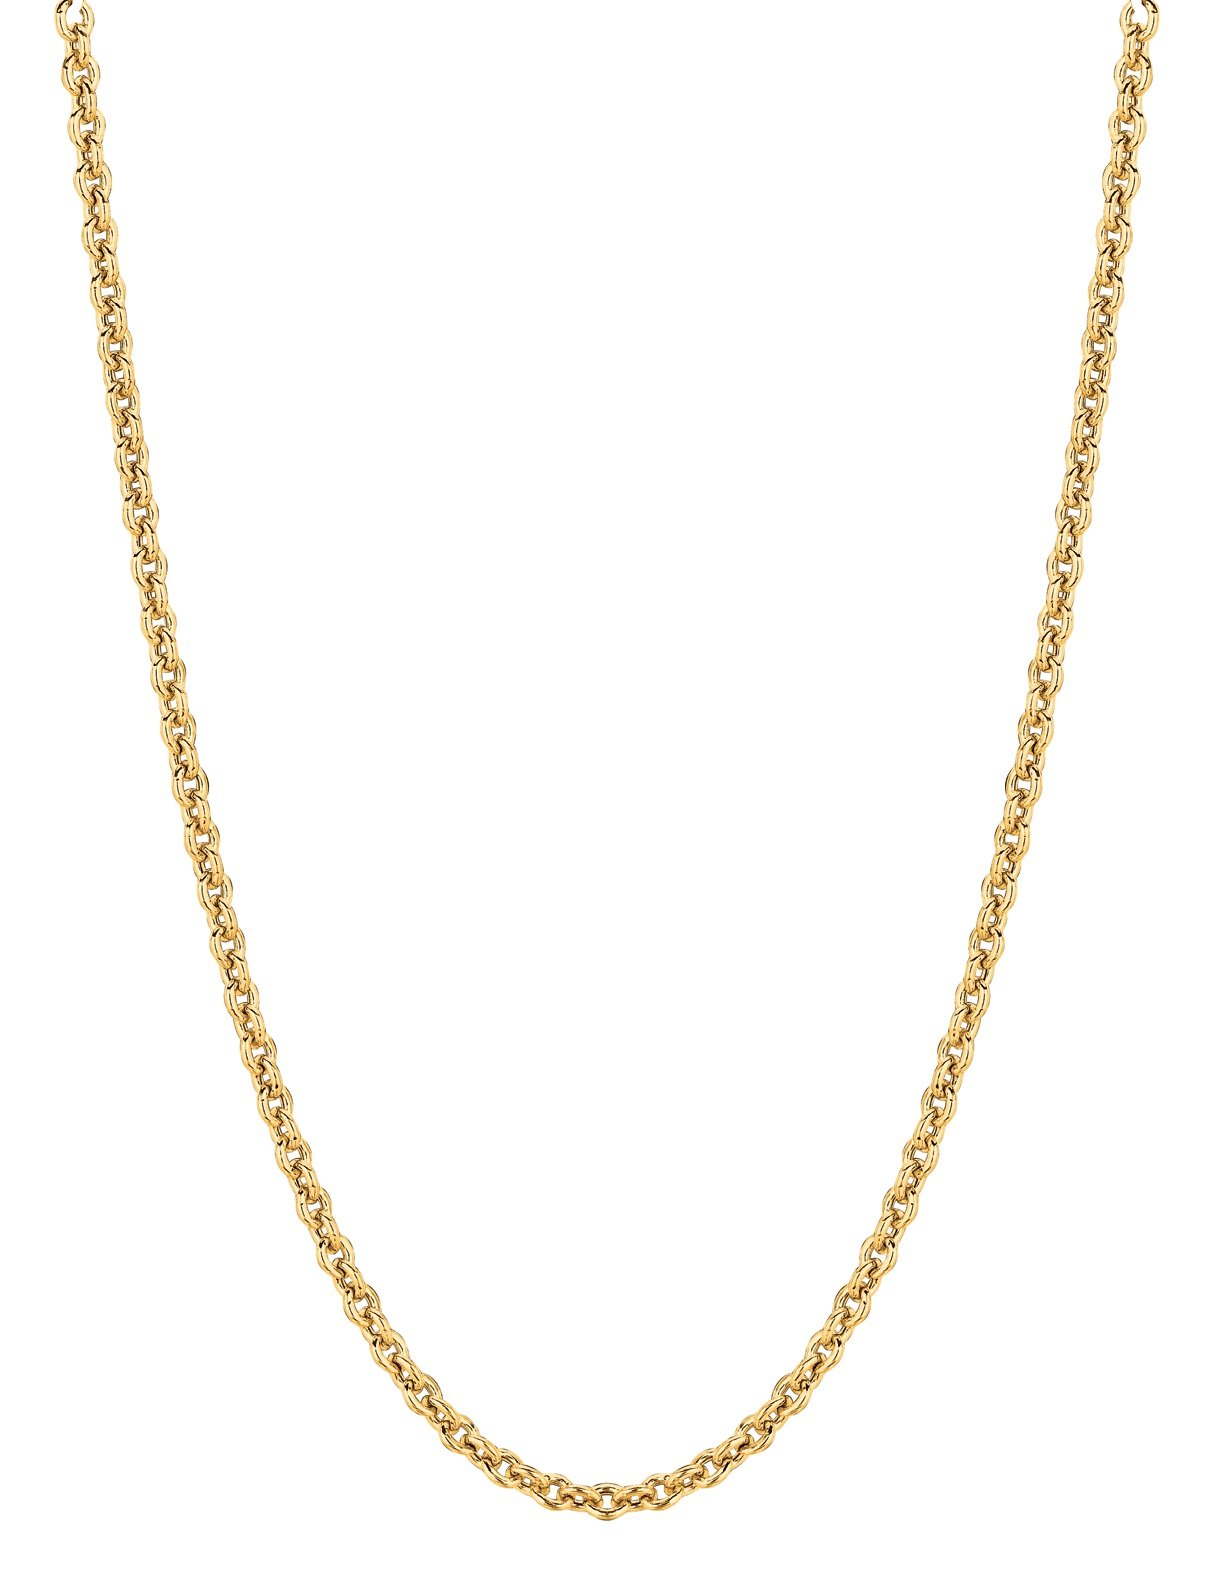 14kt 18'' Yellow Gold 1.5mm Diamond Cut Forsantina Cable Chain with Lobster Clasp by RCI